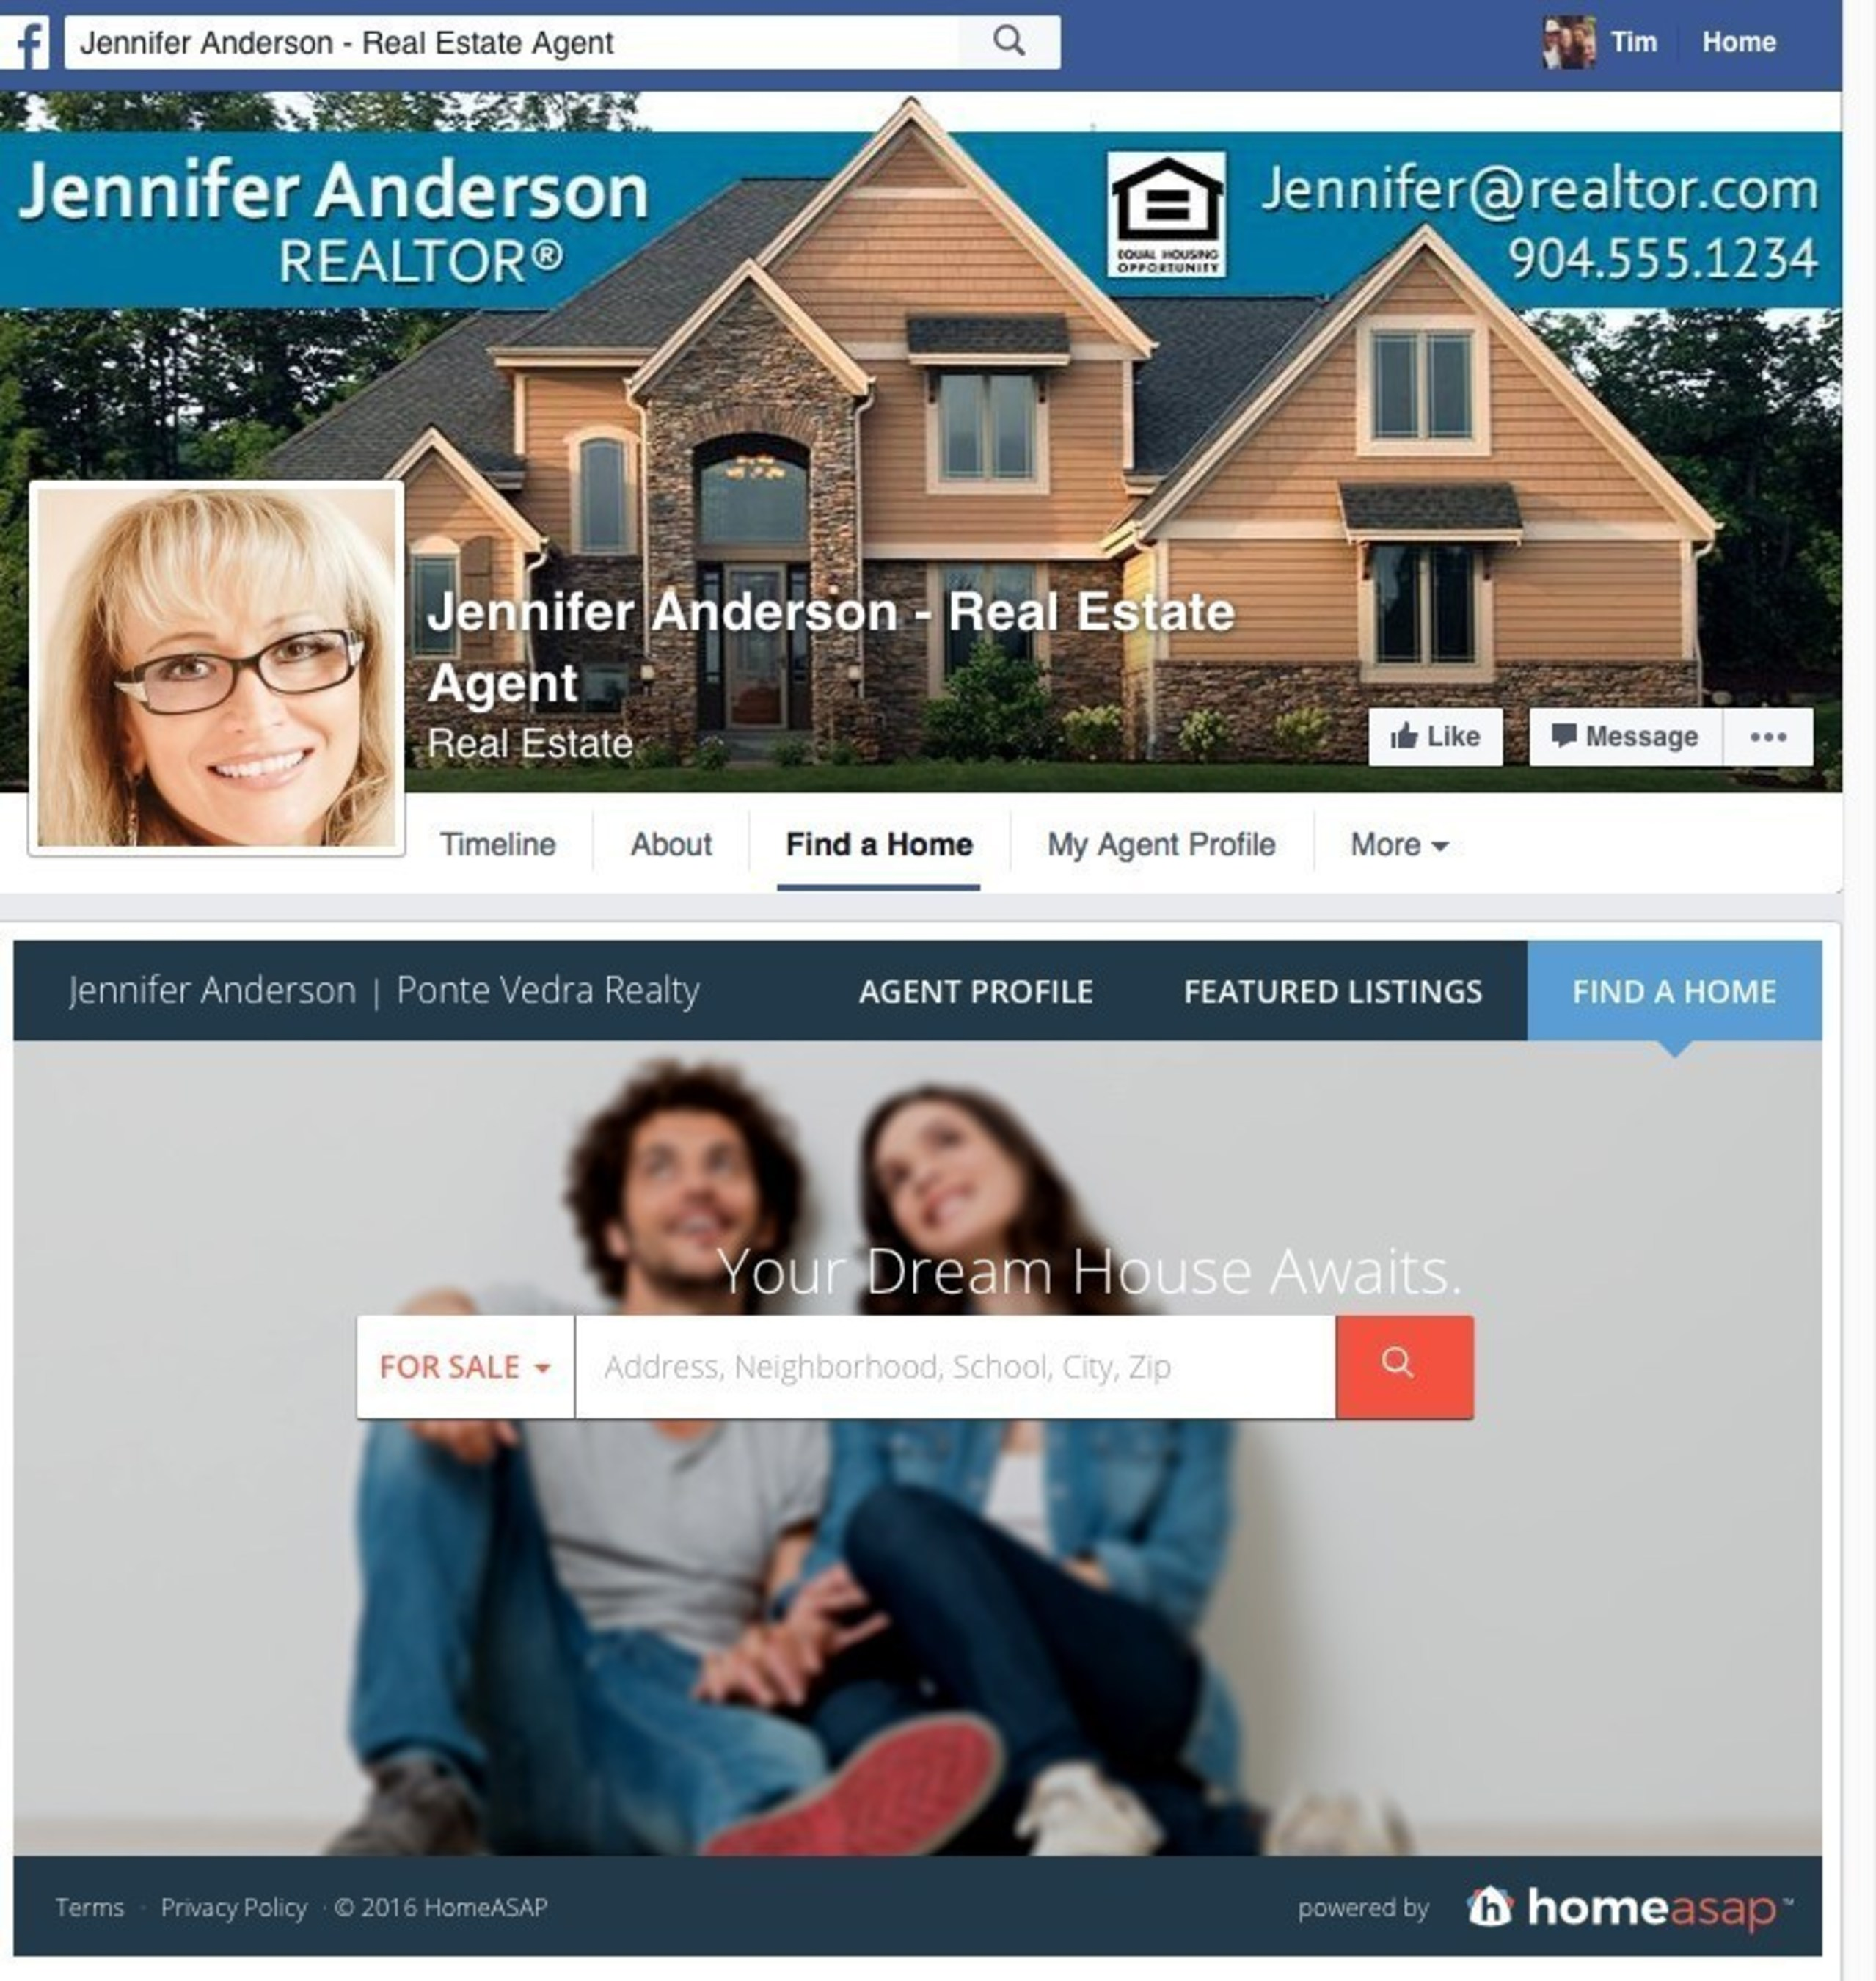 Homeasap Llc Uses Innovative Home Search Technology To Help Real